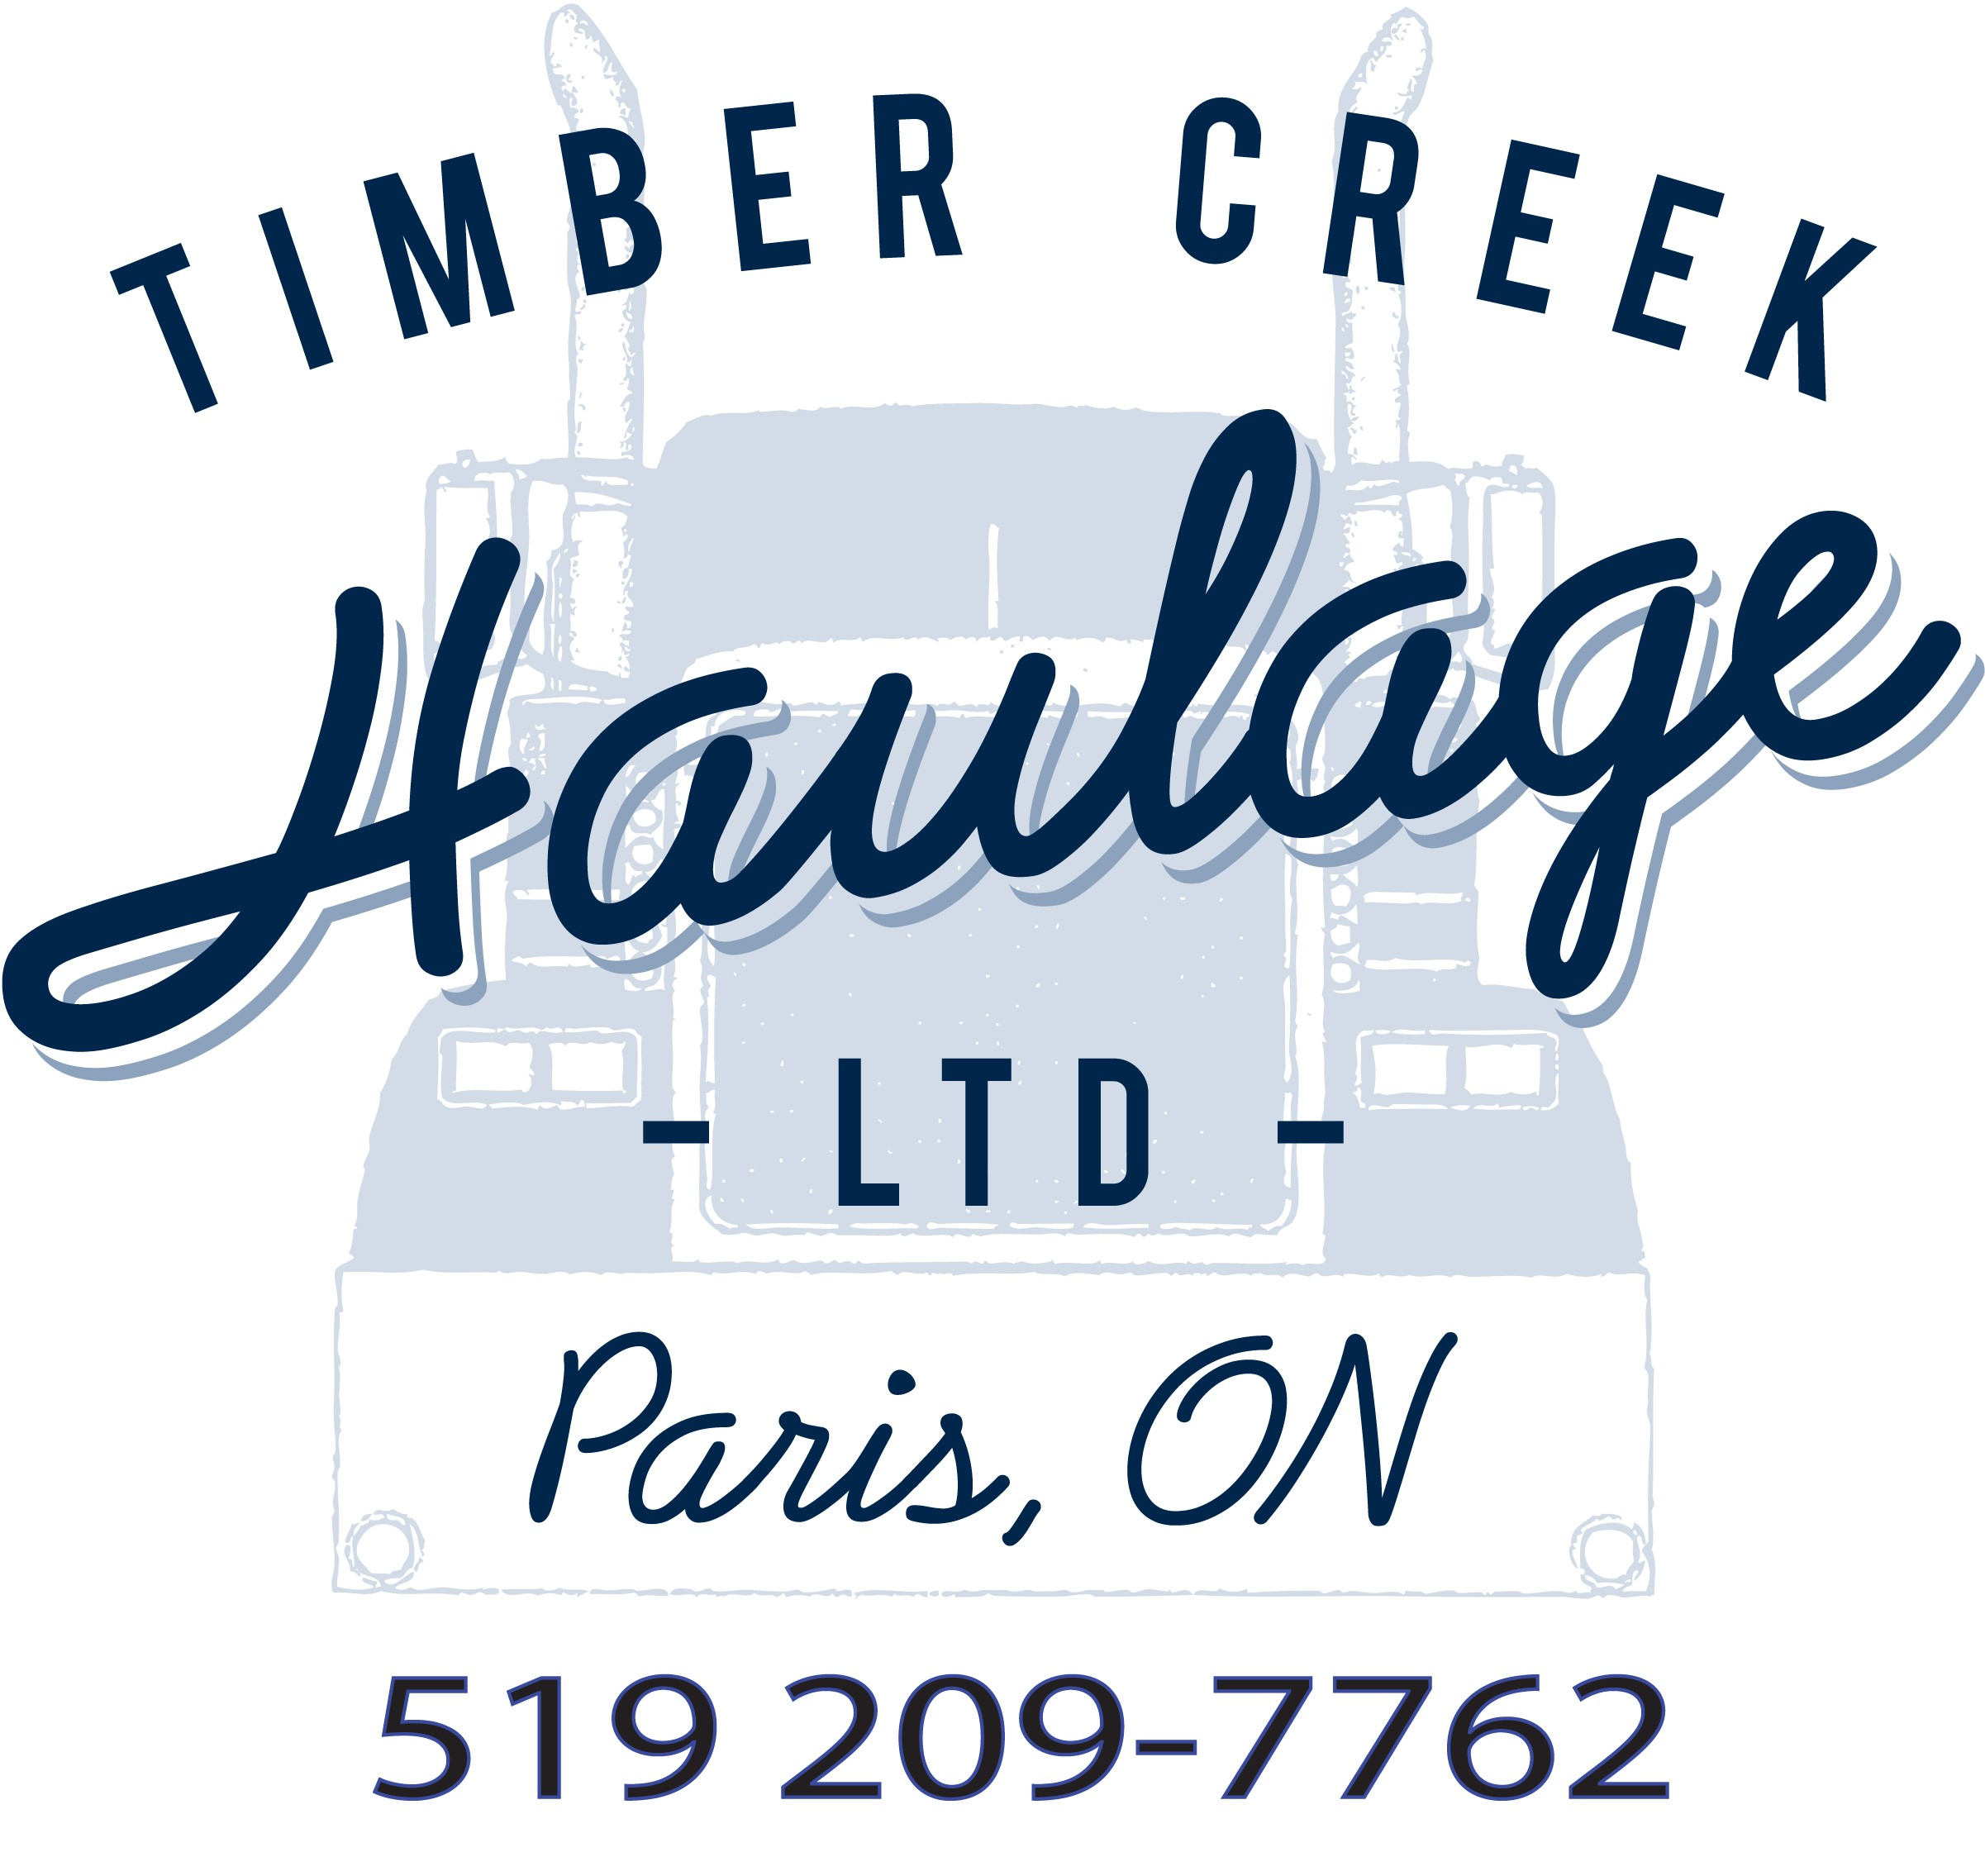 Timber Creek Haulage